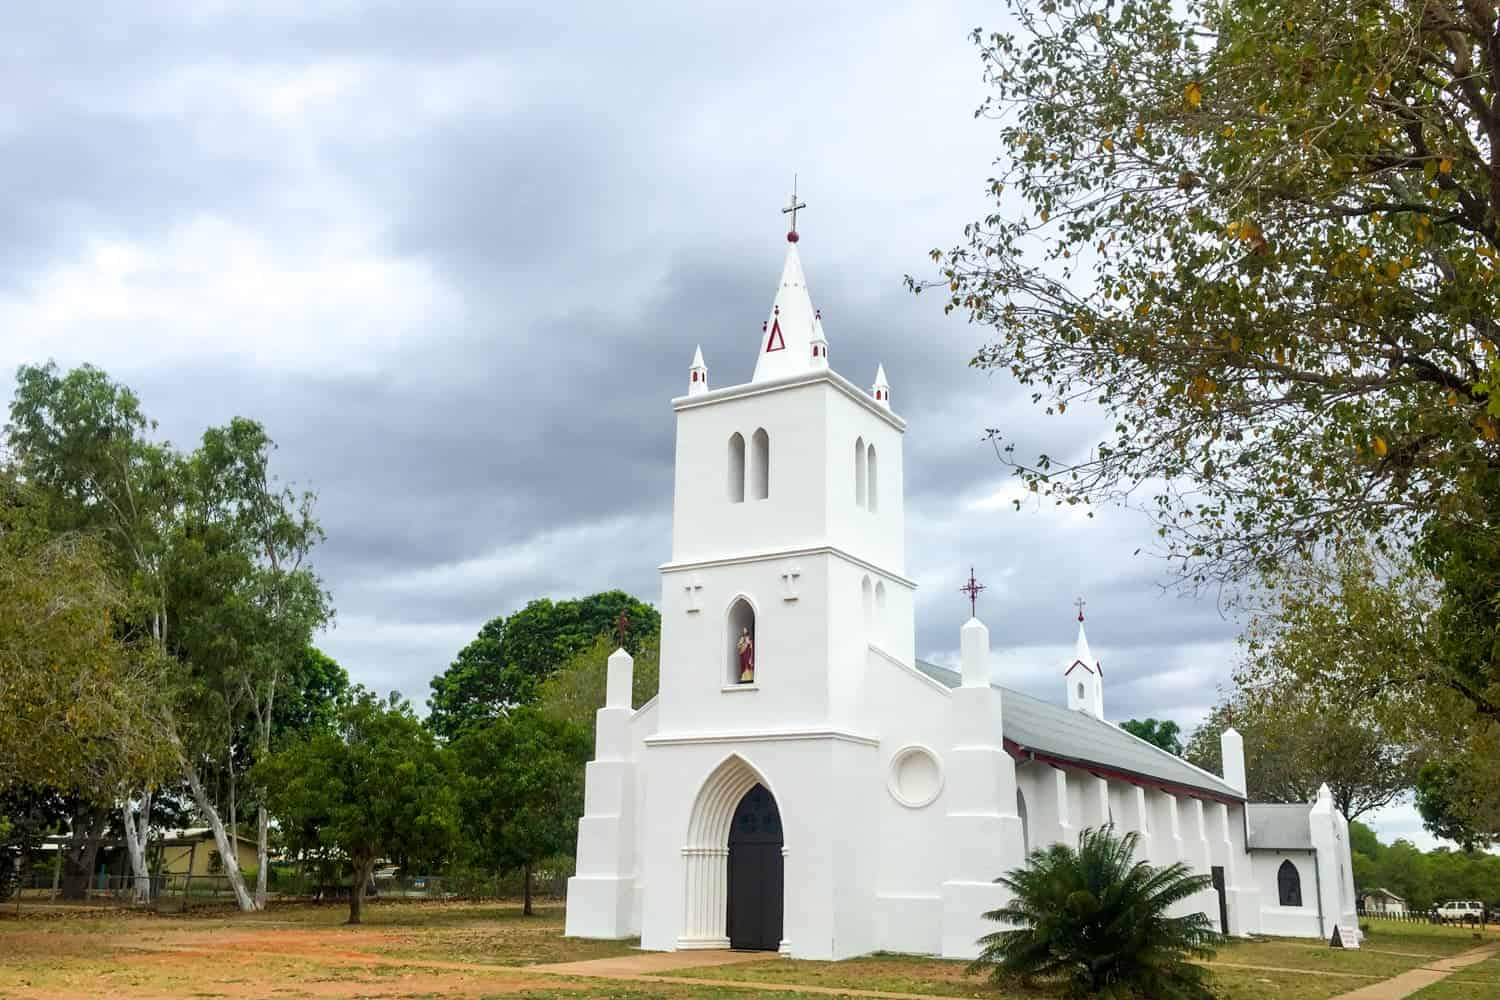 Sacred heart Church in Beagle Bay, Aboriginal Communities in Kimberly Outback of Western Australia